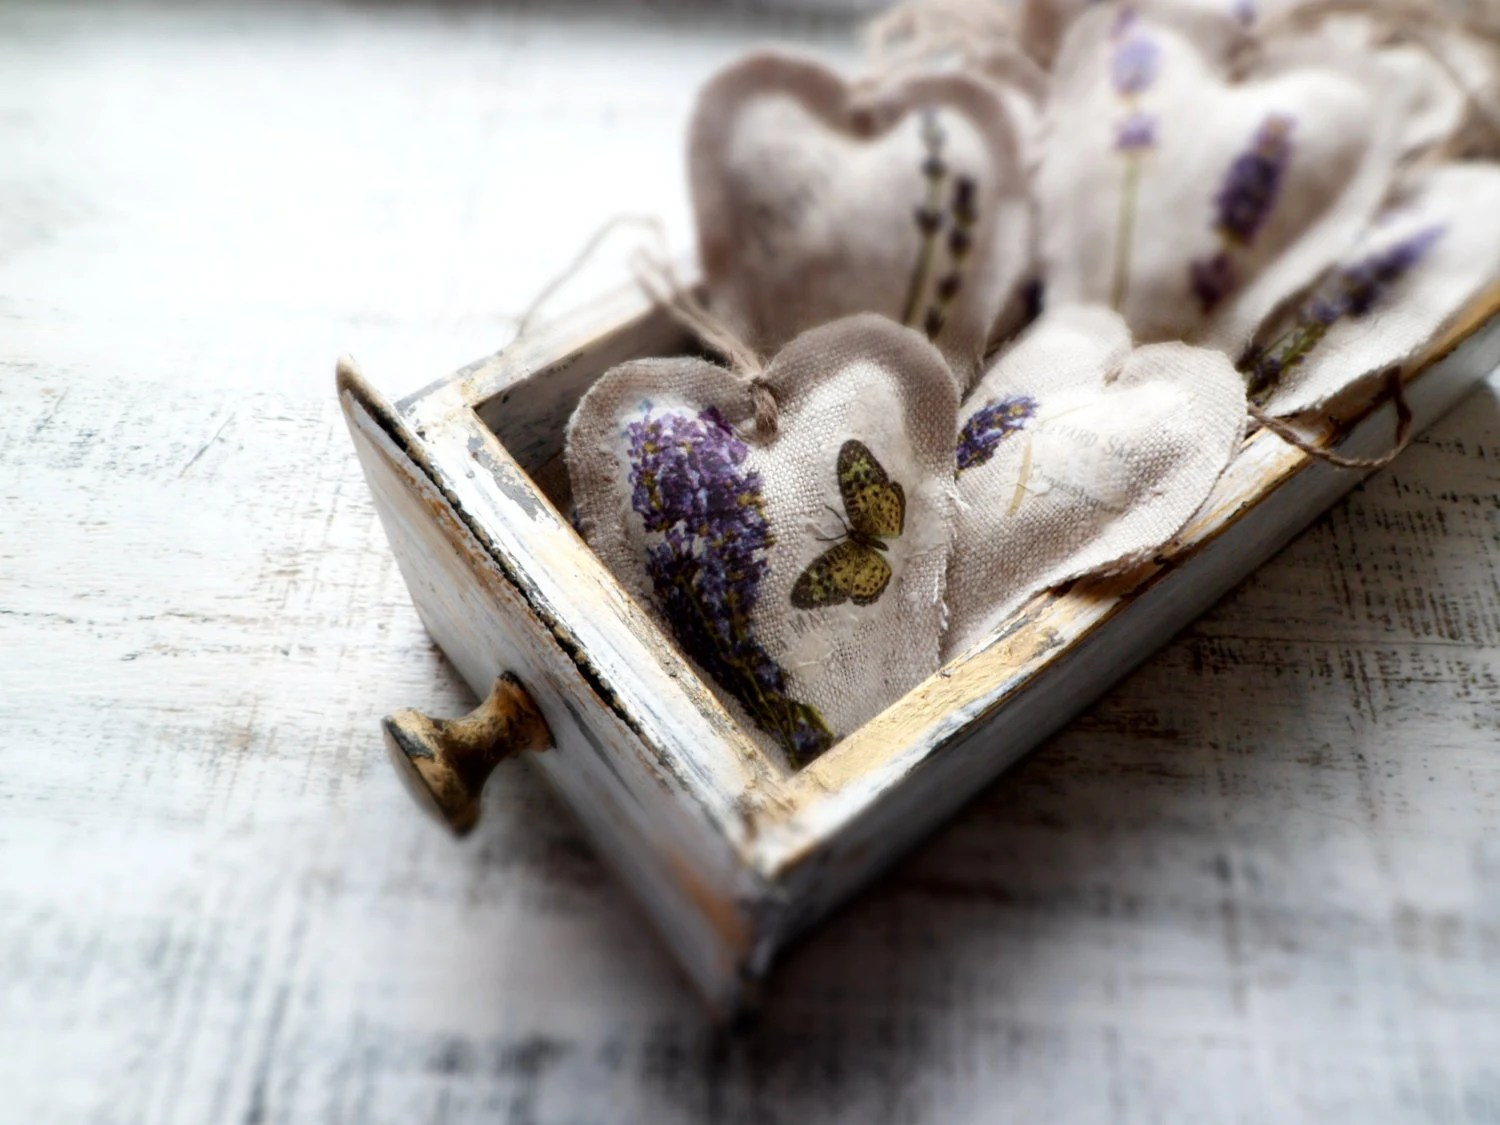 10 lavender shabby chic wedding favors wedding decor heart sachets guest favors rustic bridal shower France Provence lilac grey white - HandyHappyHearts